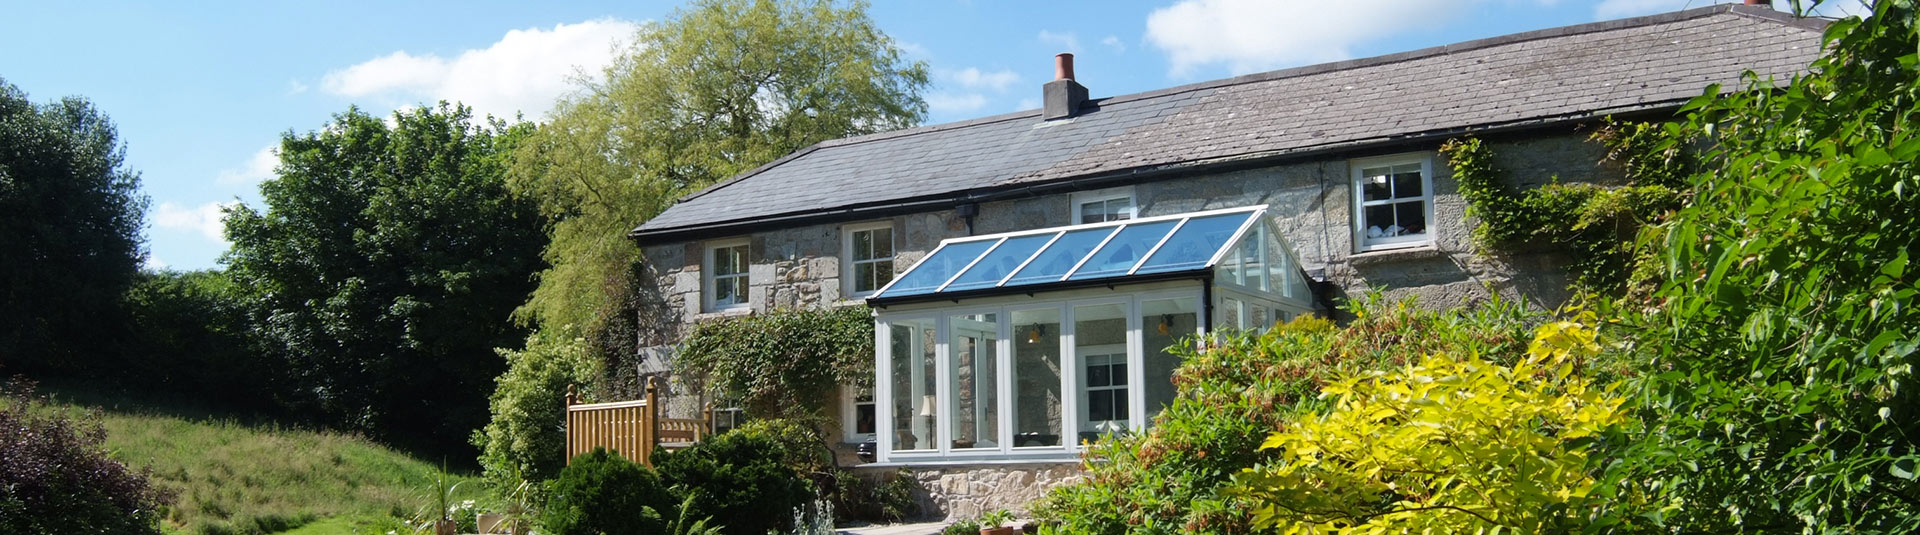 luxury holidays bay exterior spindrift house daymer holiday bray a cornish cottages cornwall the near of john view cottage find